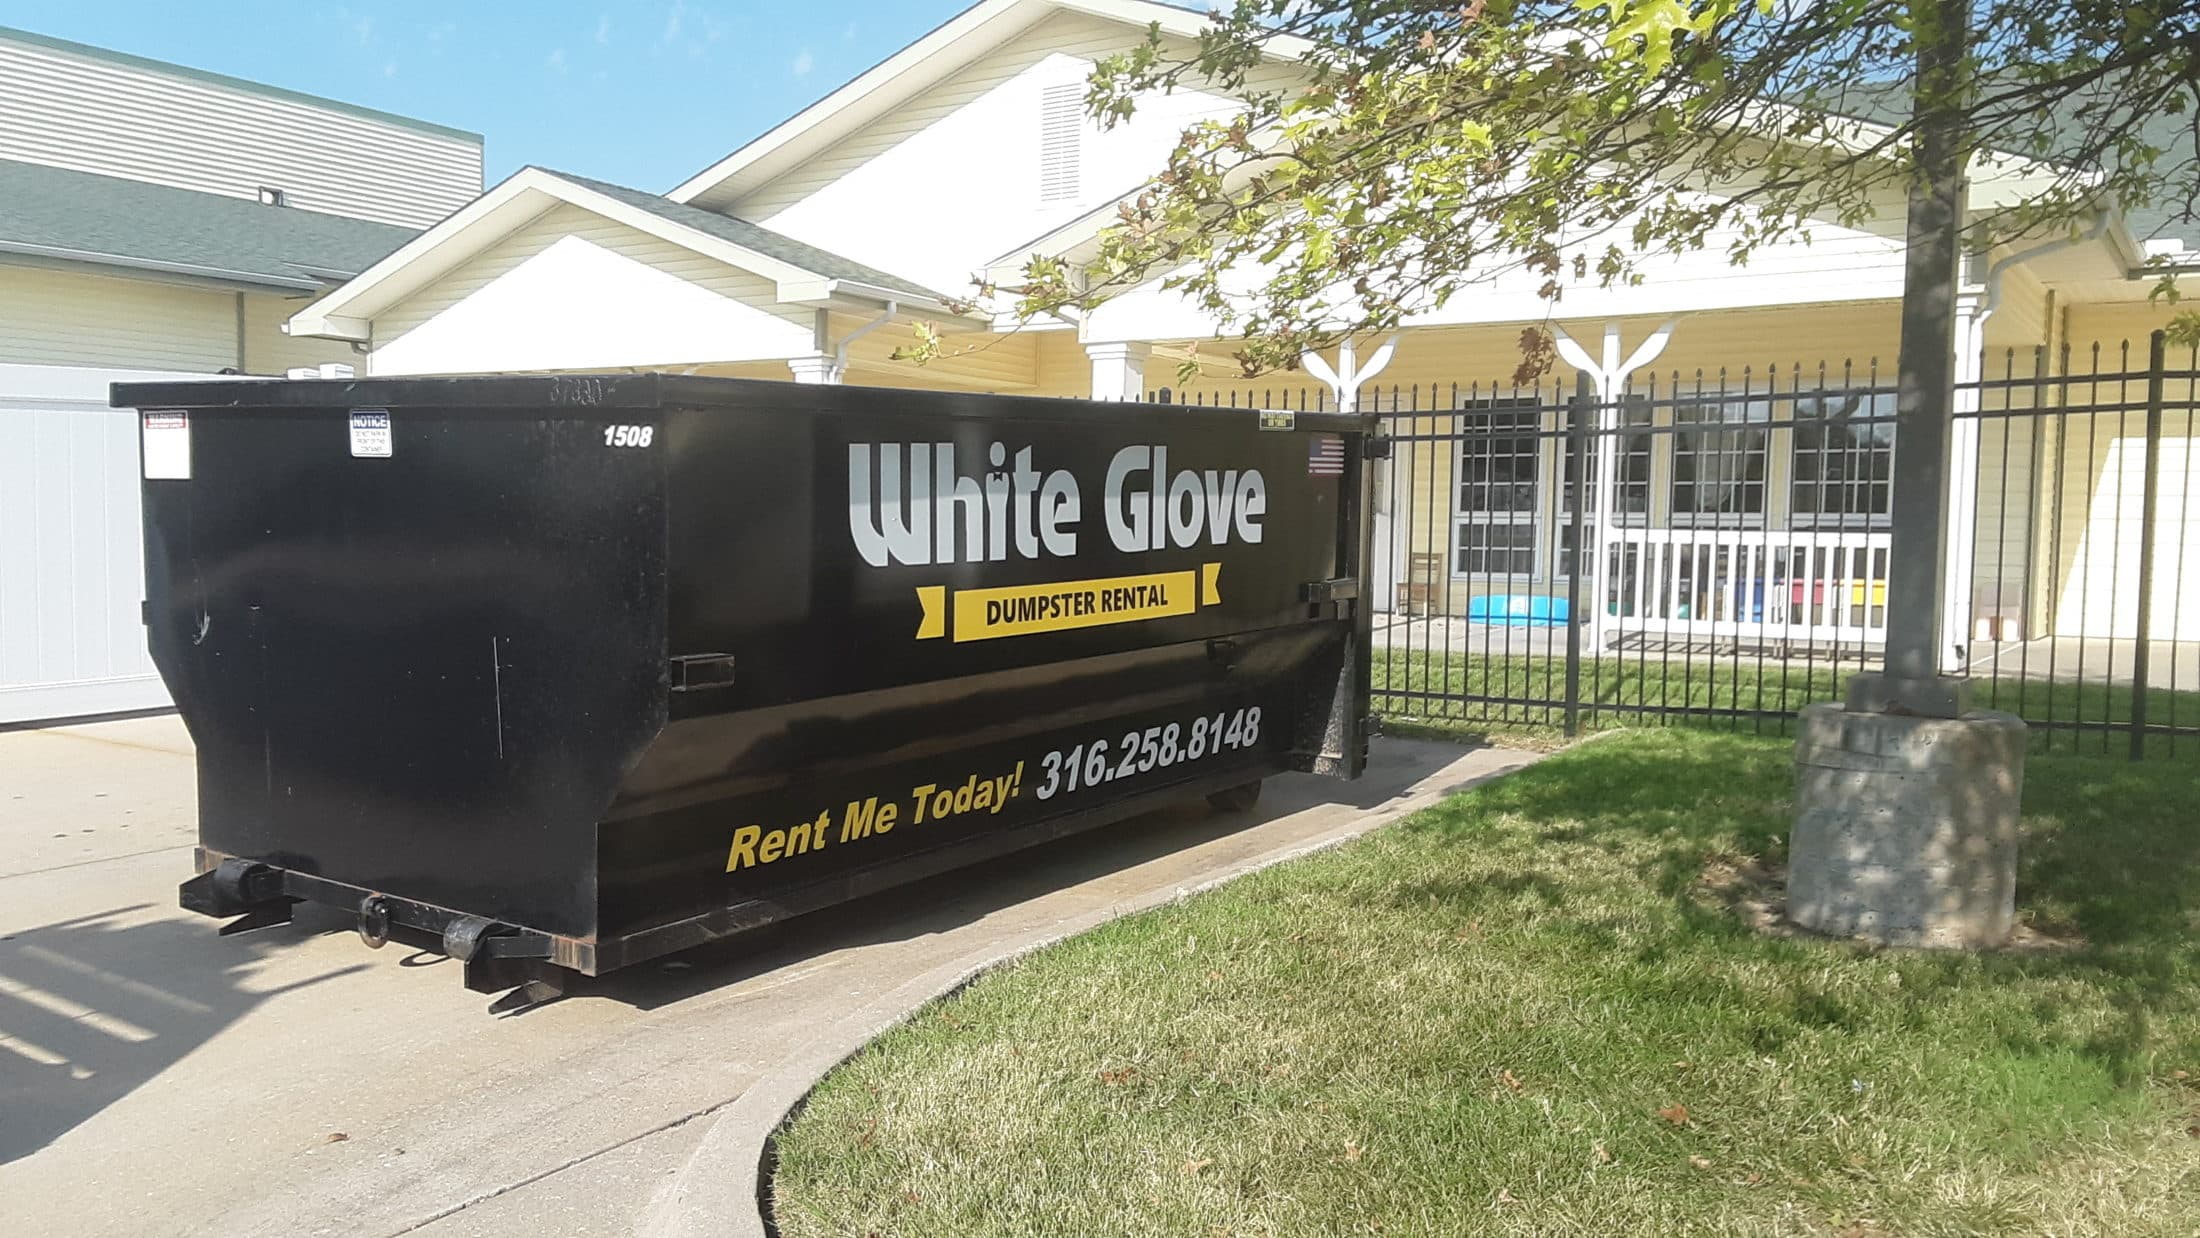 Contact White Glove Dumpster Rental